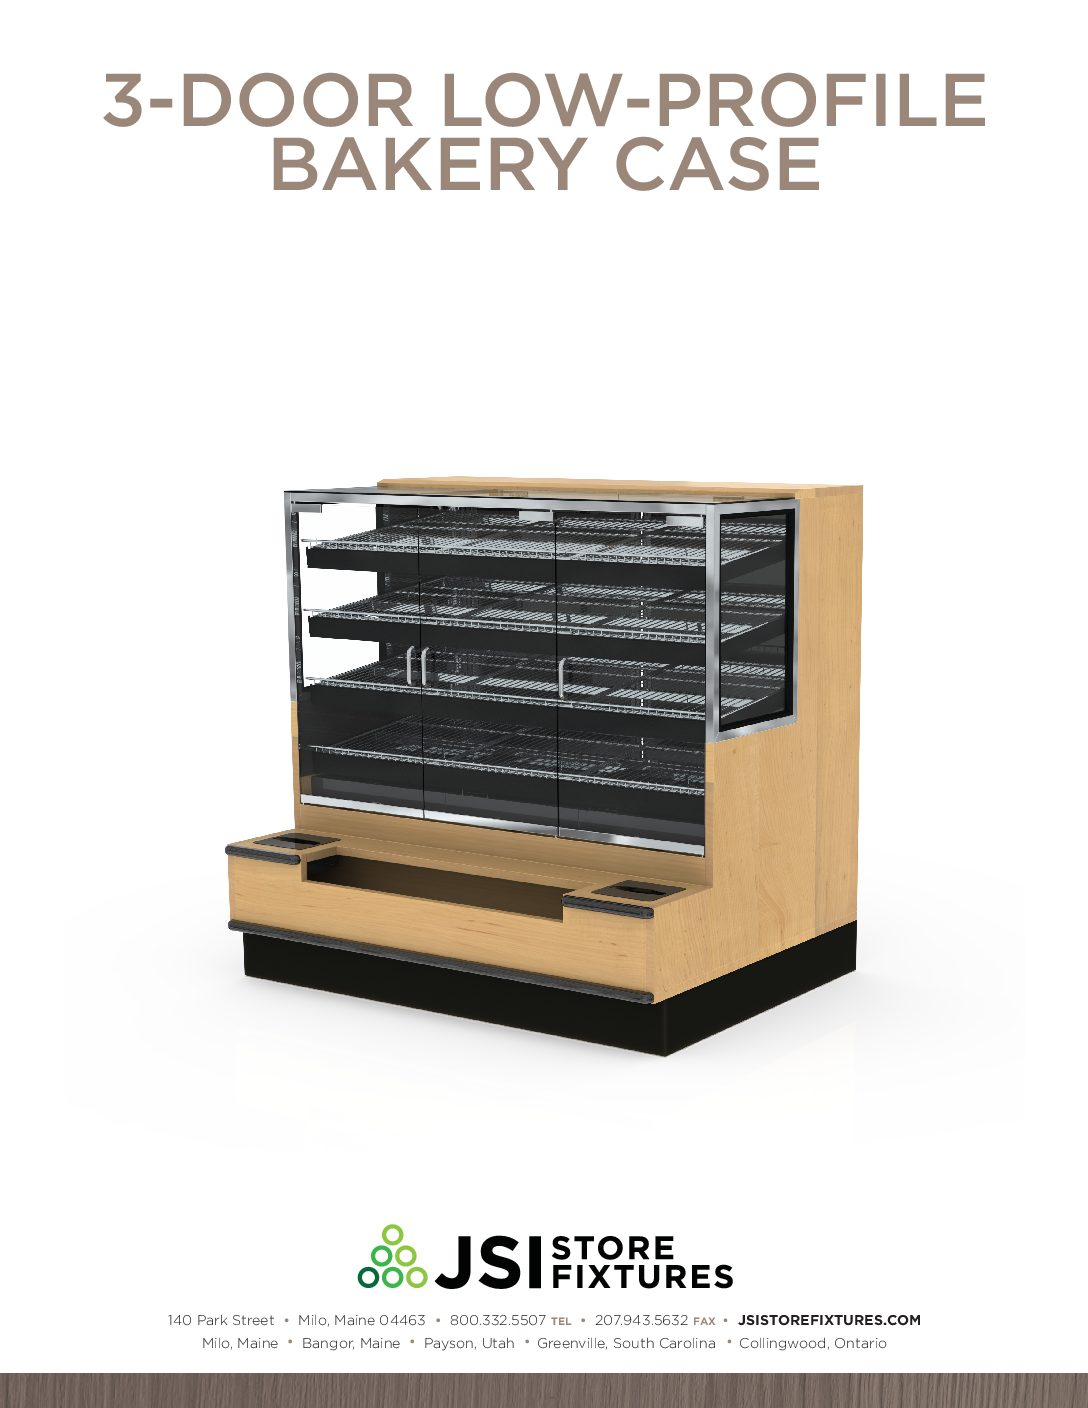 3-Door Low-Profile Bakery Case Spec Sheet